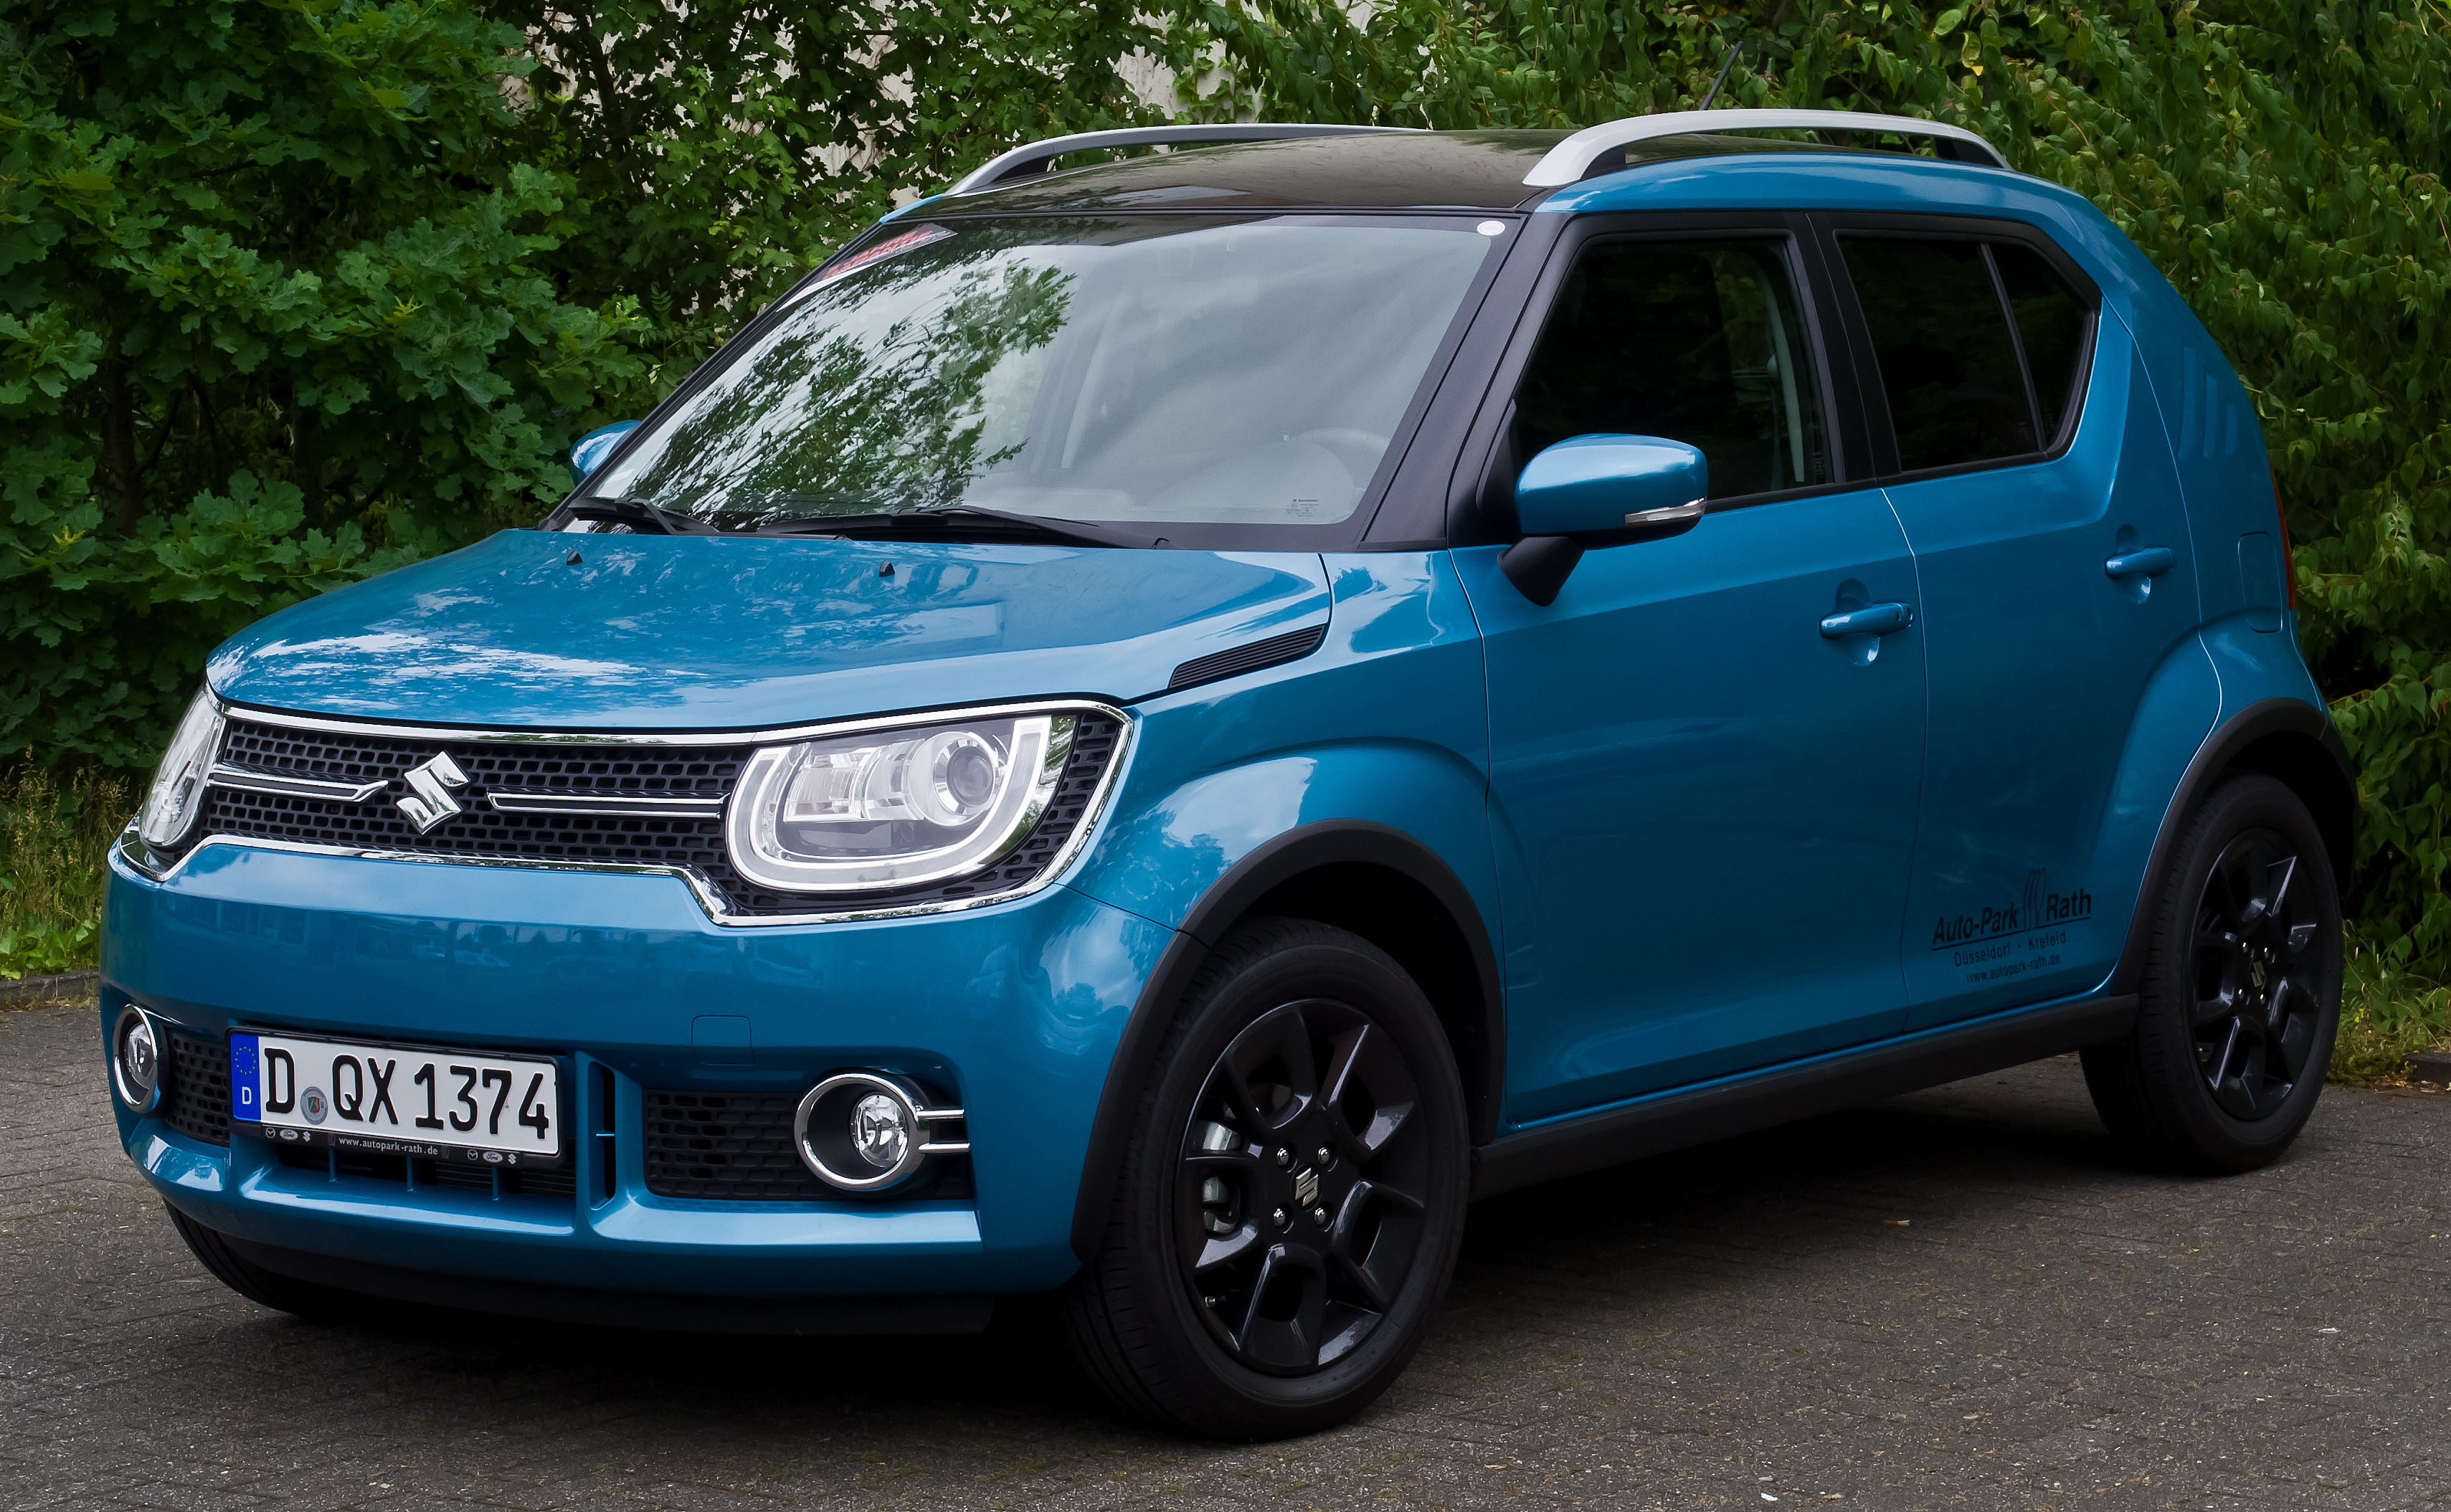 Suzuki_Ignis_1.2_Intro_Edition%2B_%28III%29_%E2%80%93_Frontansicht%2C_24._Juni_2017%2C_D%C3%BCsseldorf suzuki ignis wikipedia suzuki ignis sport wiring diagram at eliteediting.co